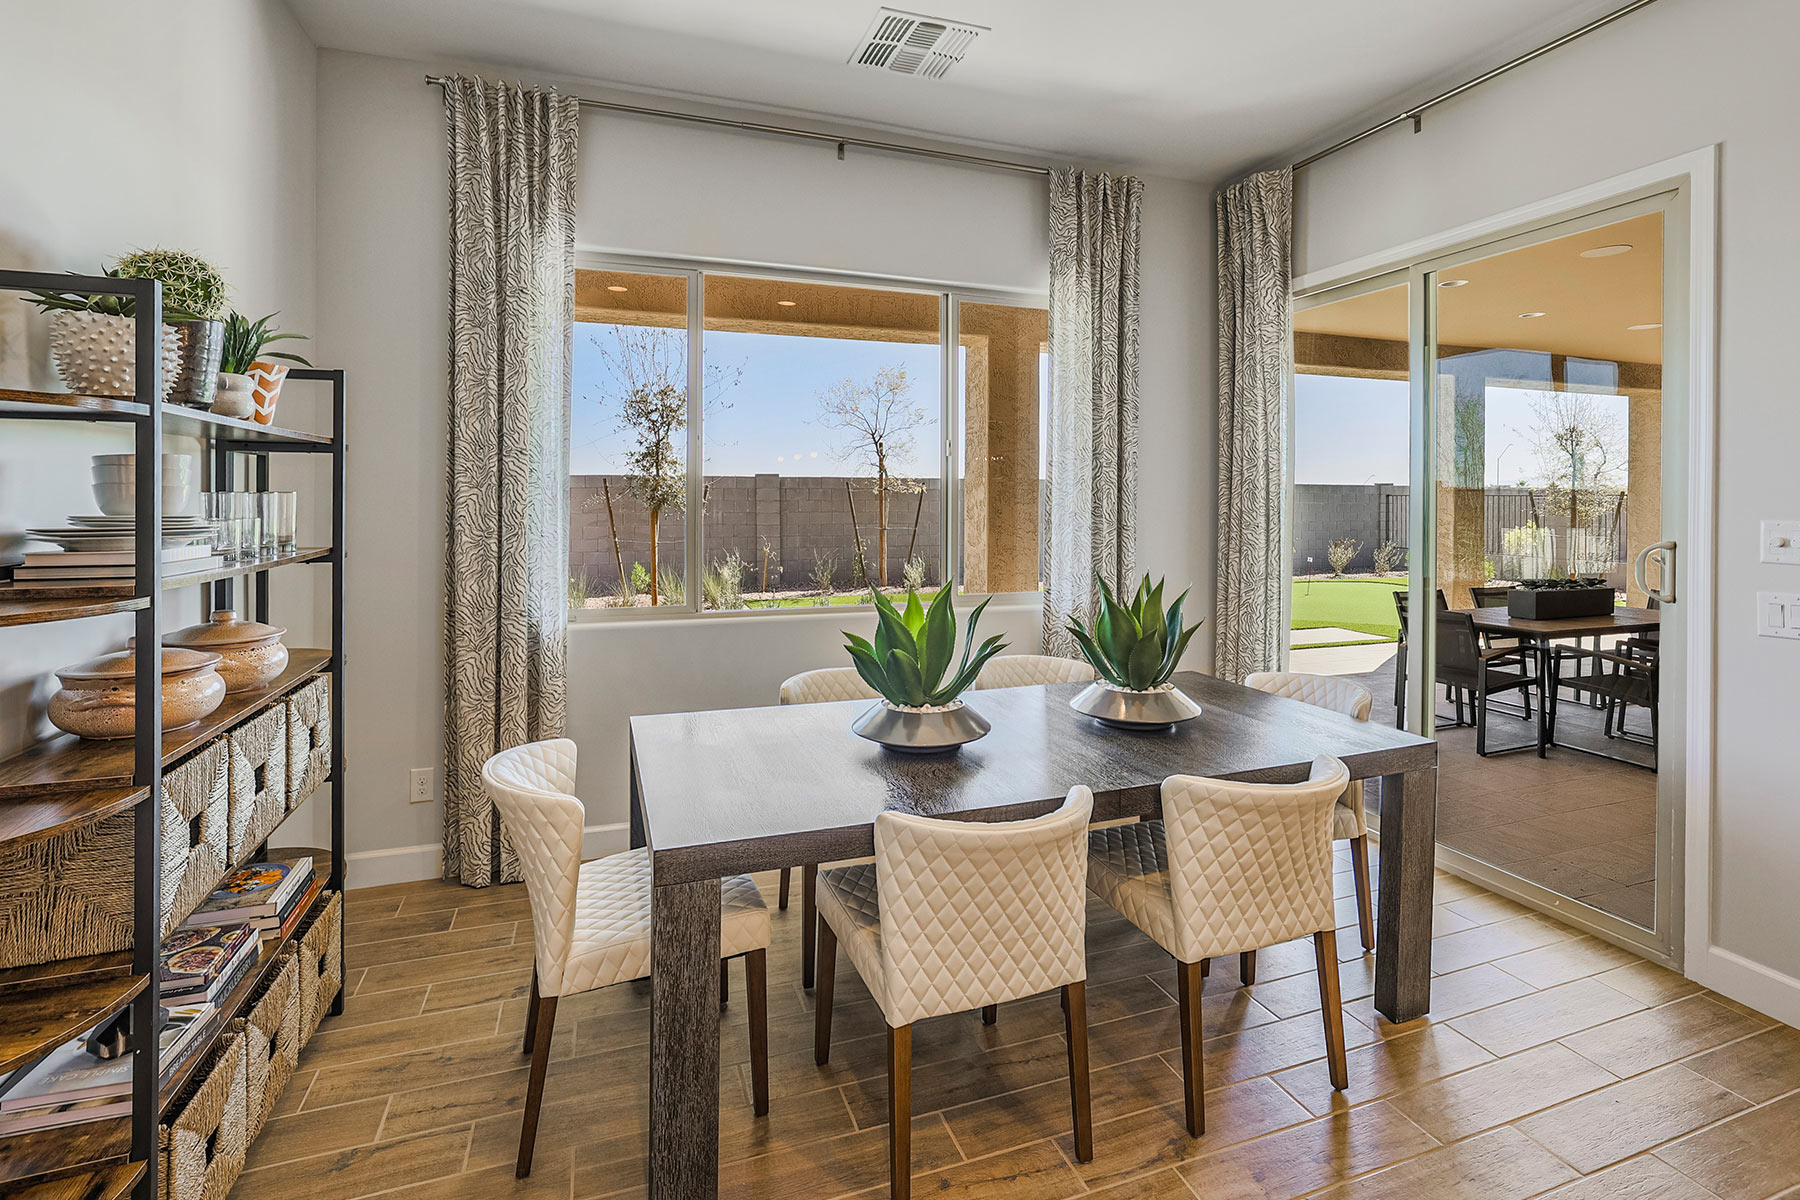 Castleton Plan Dining at Azure Canyon in Litchfield Park Arizona by Mattamy Homes